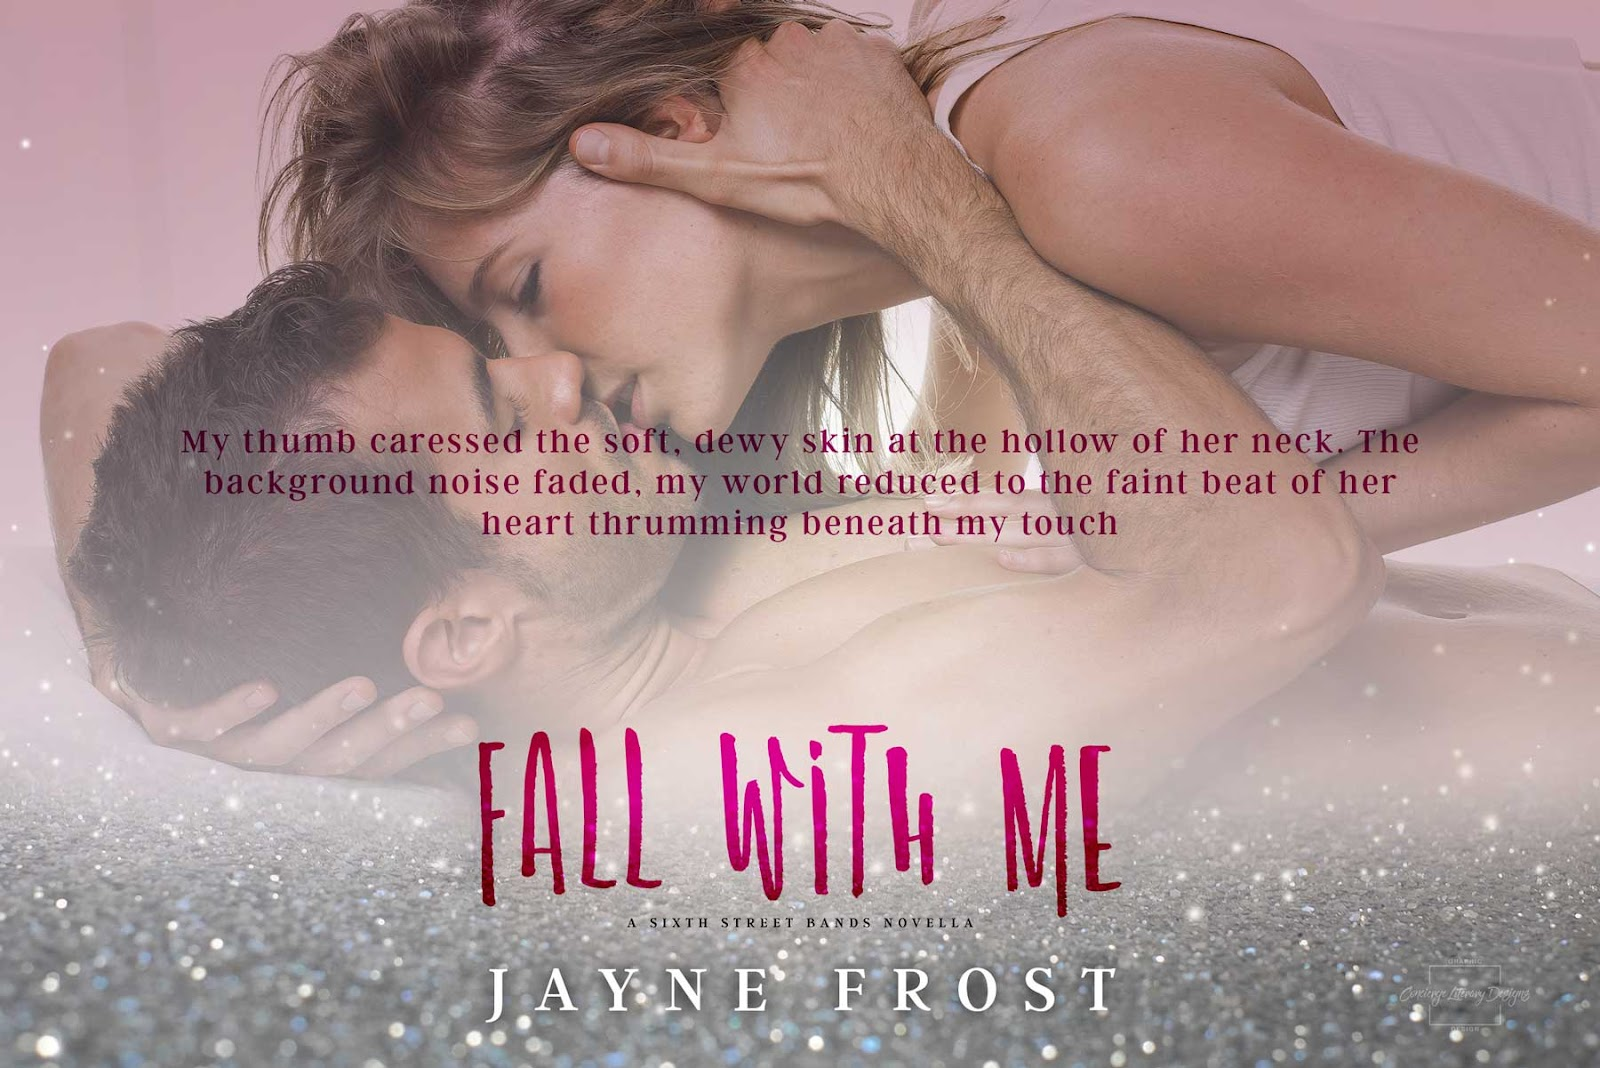 FALL-WITH-ME---BEAT-OF-HER-HEART.jpg